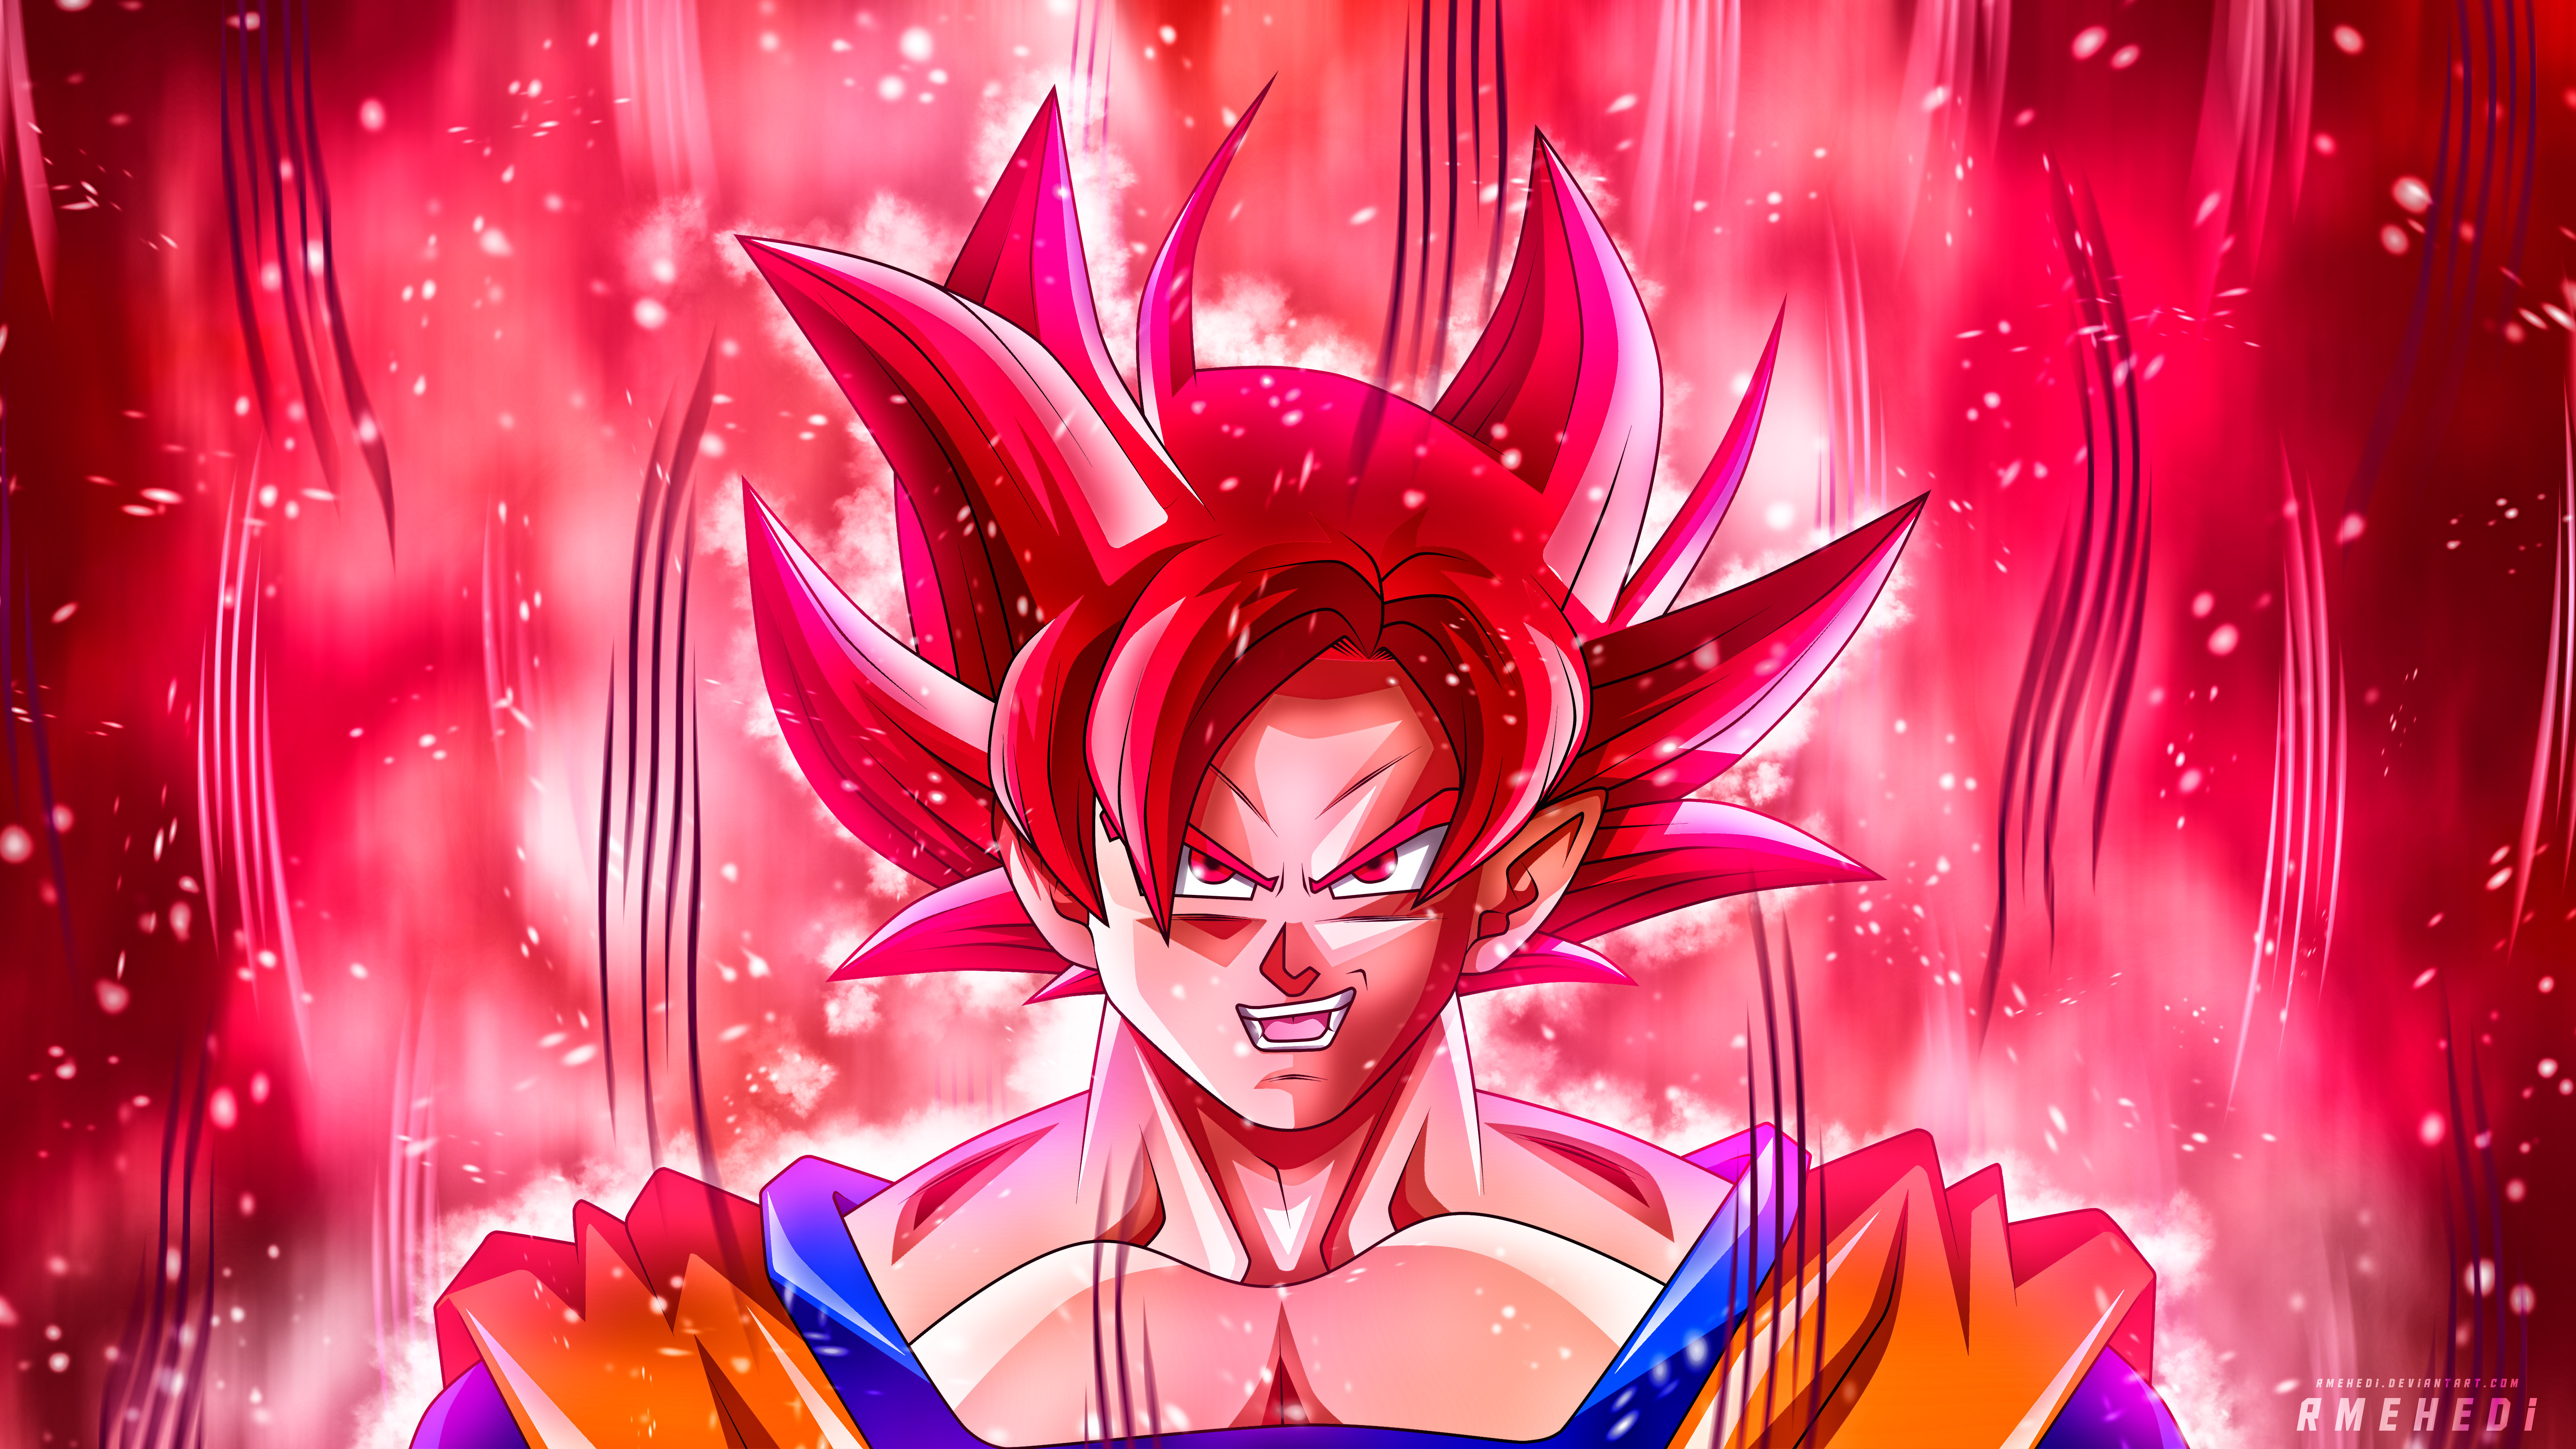 Goku anime 5k hd anime 4k wallpapers images - 5k anime wallpaper ...